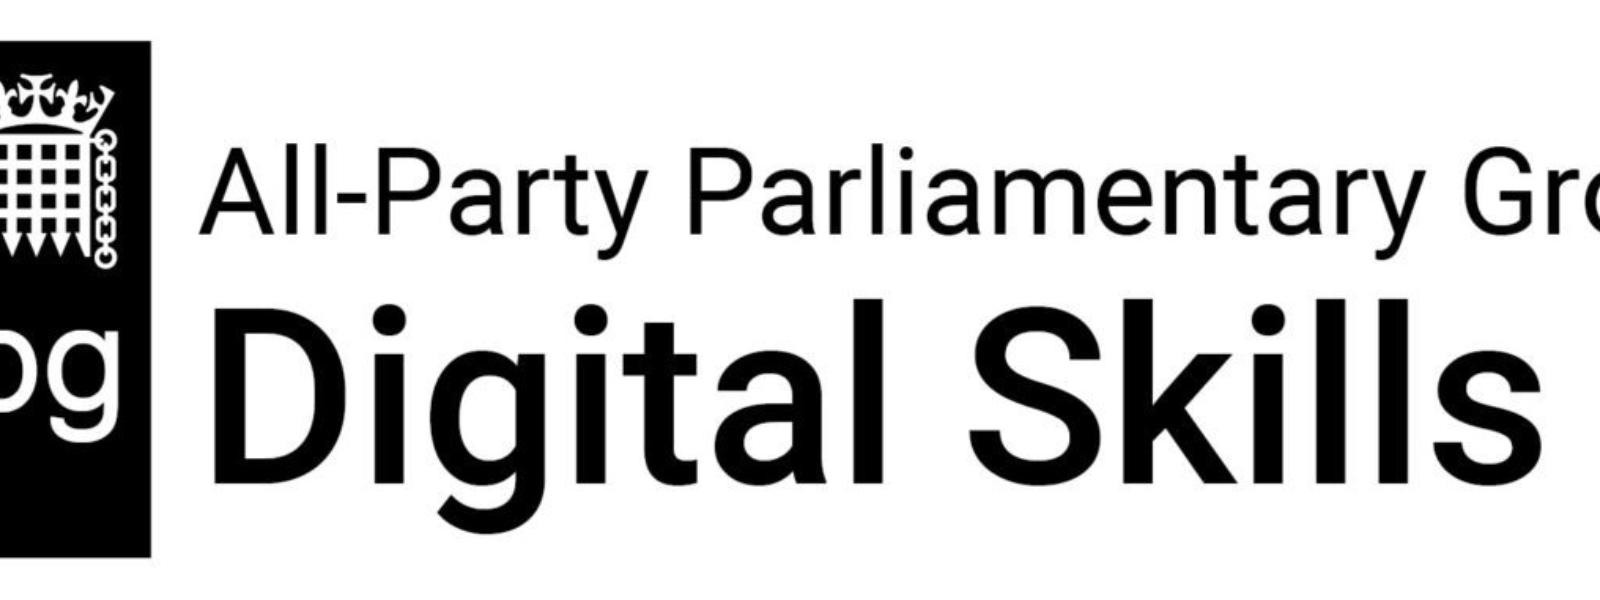 When Ada attended the All-party Parliamentary Group on Digital Skills